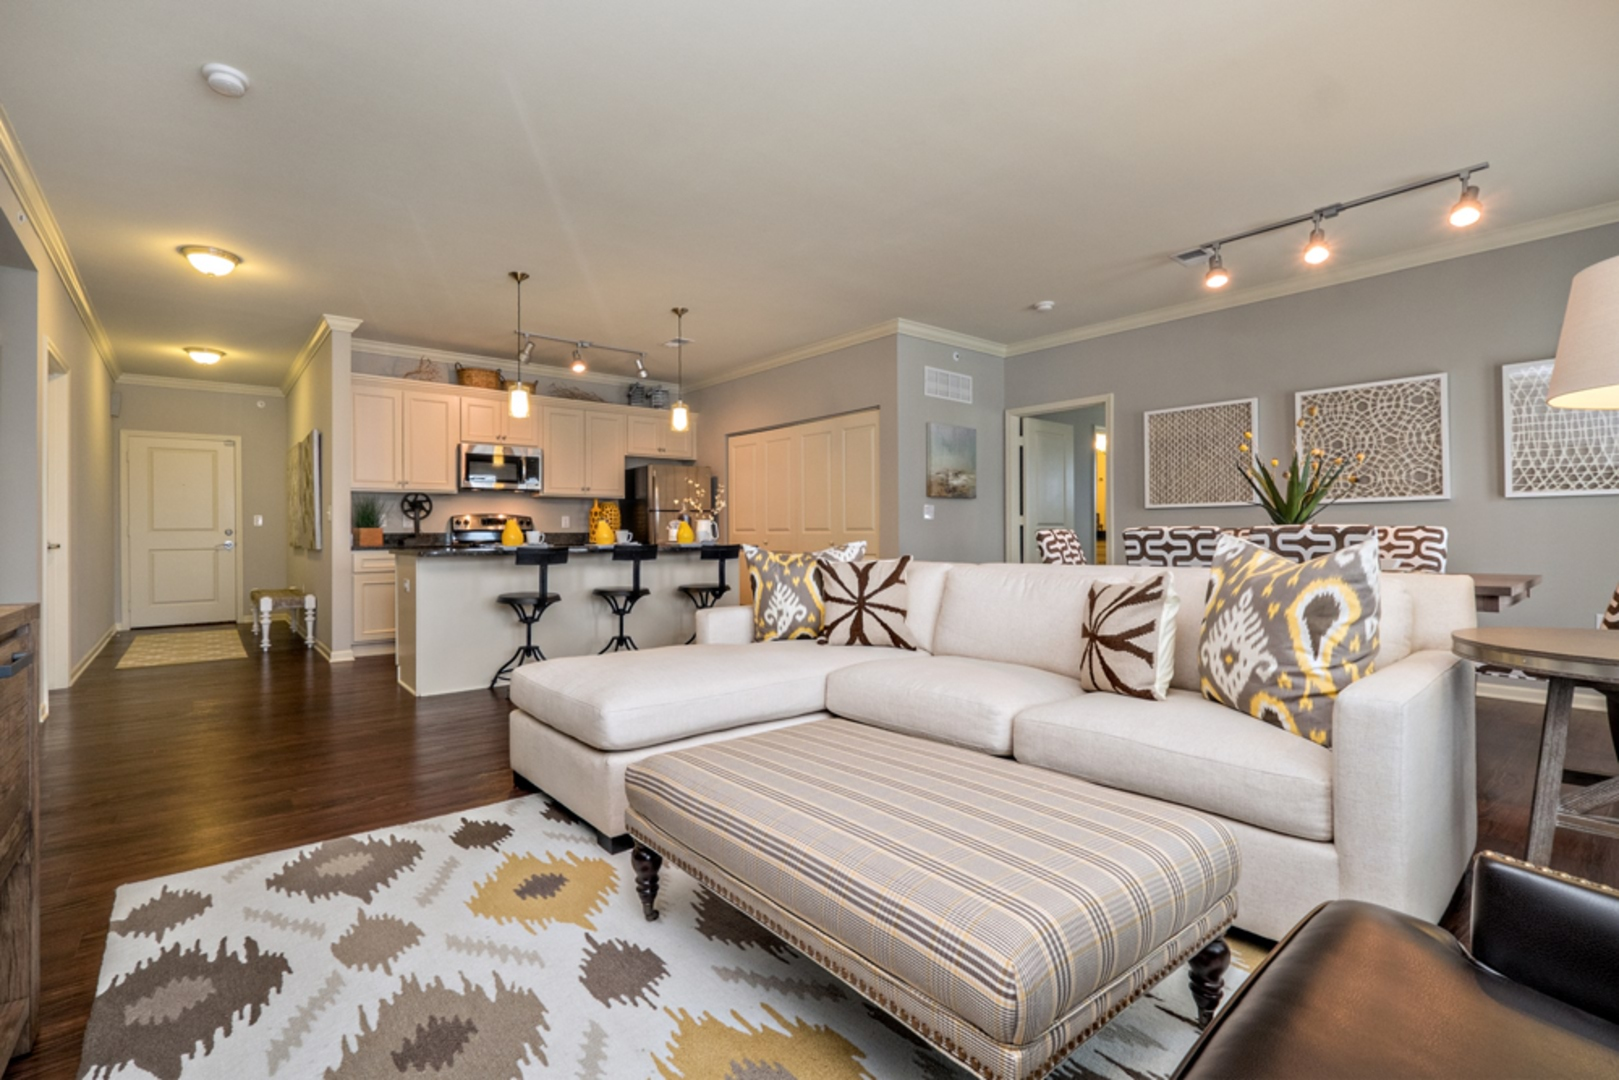 Village West Luxury Apartments For Rent Near The Legends